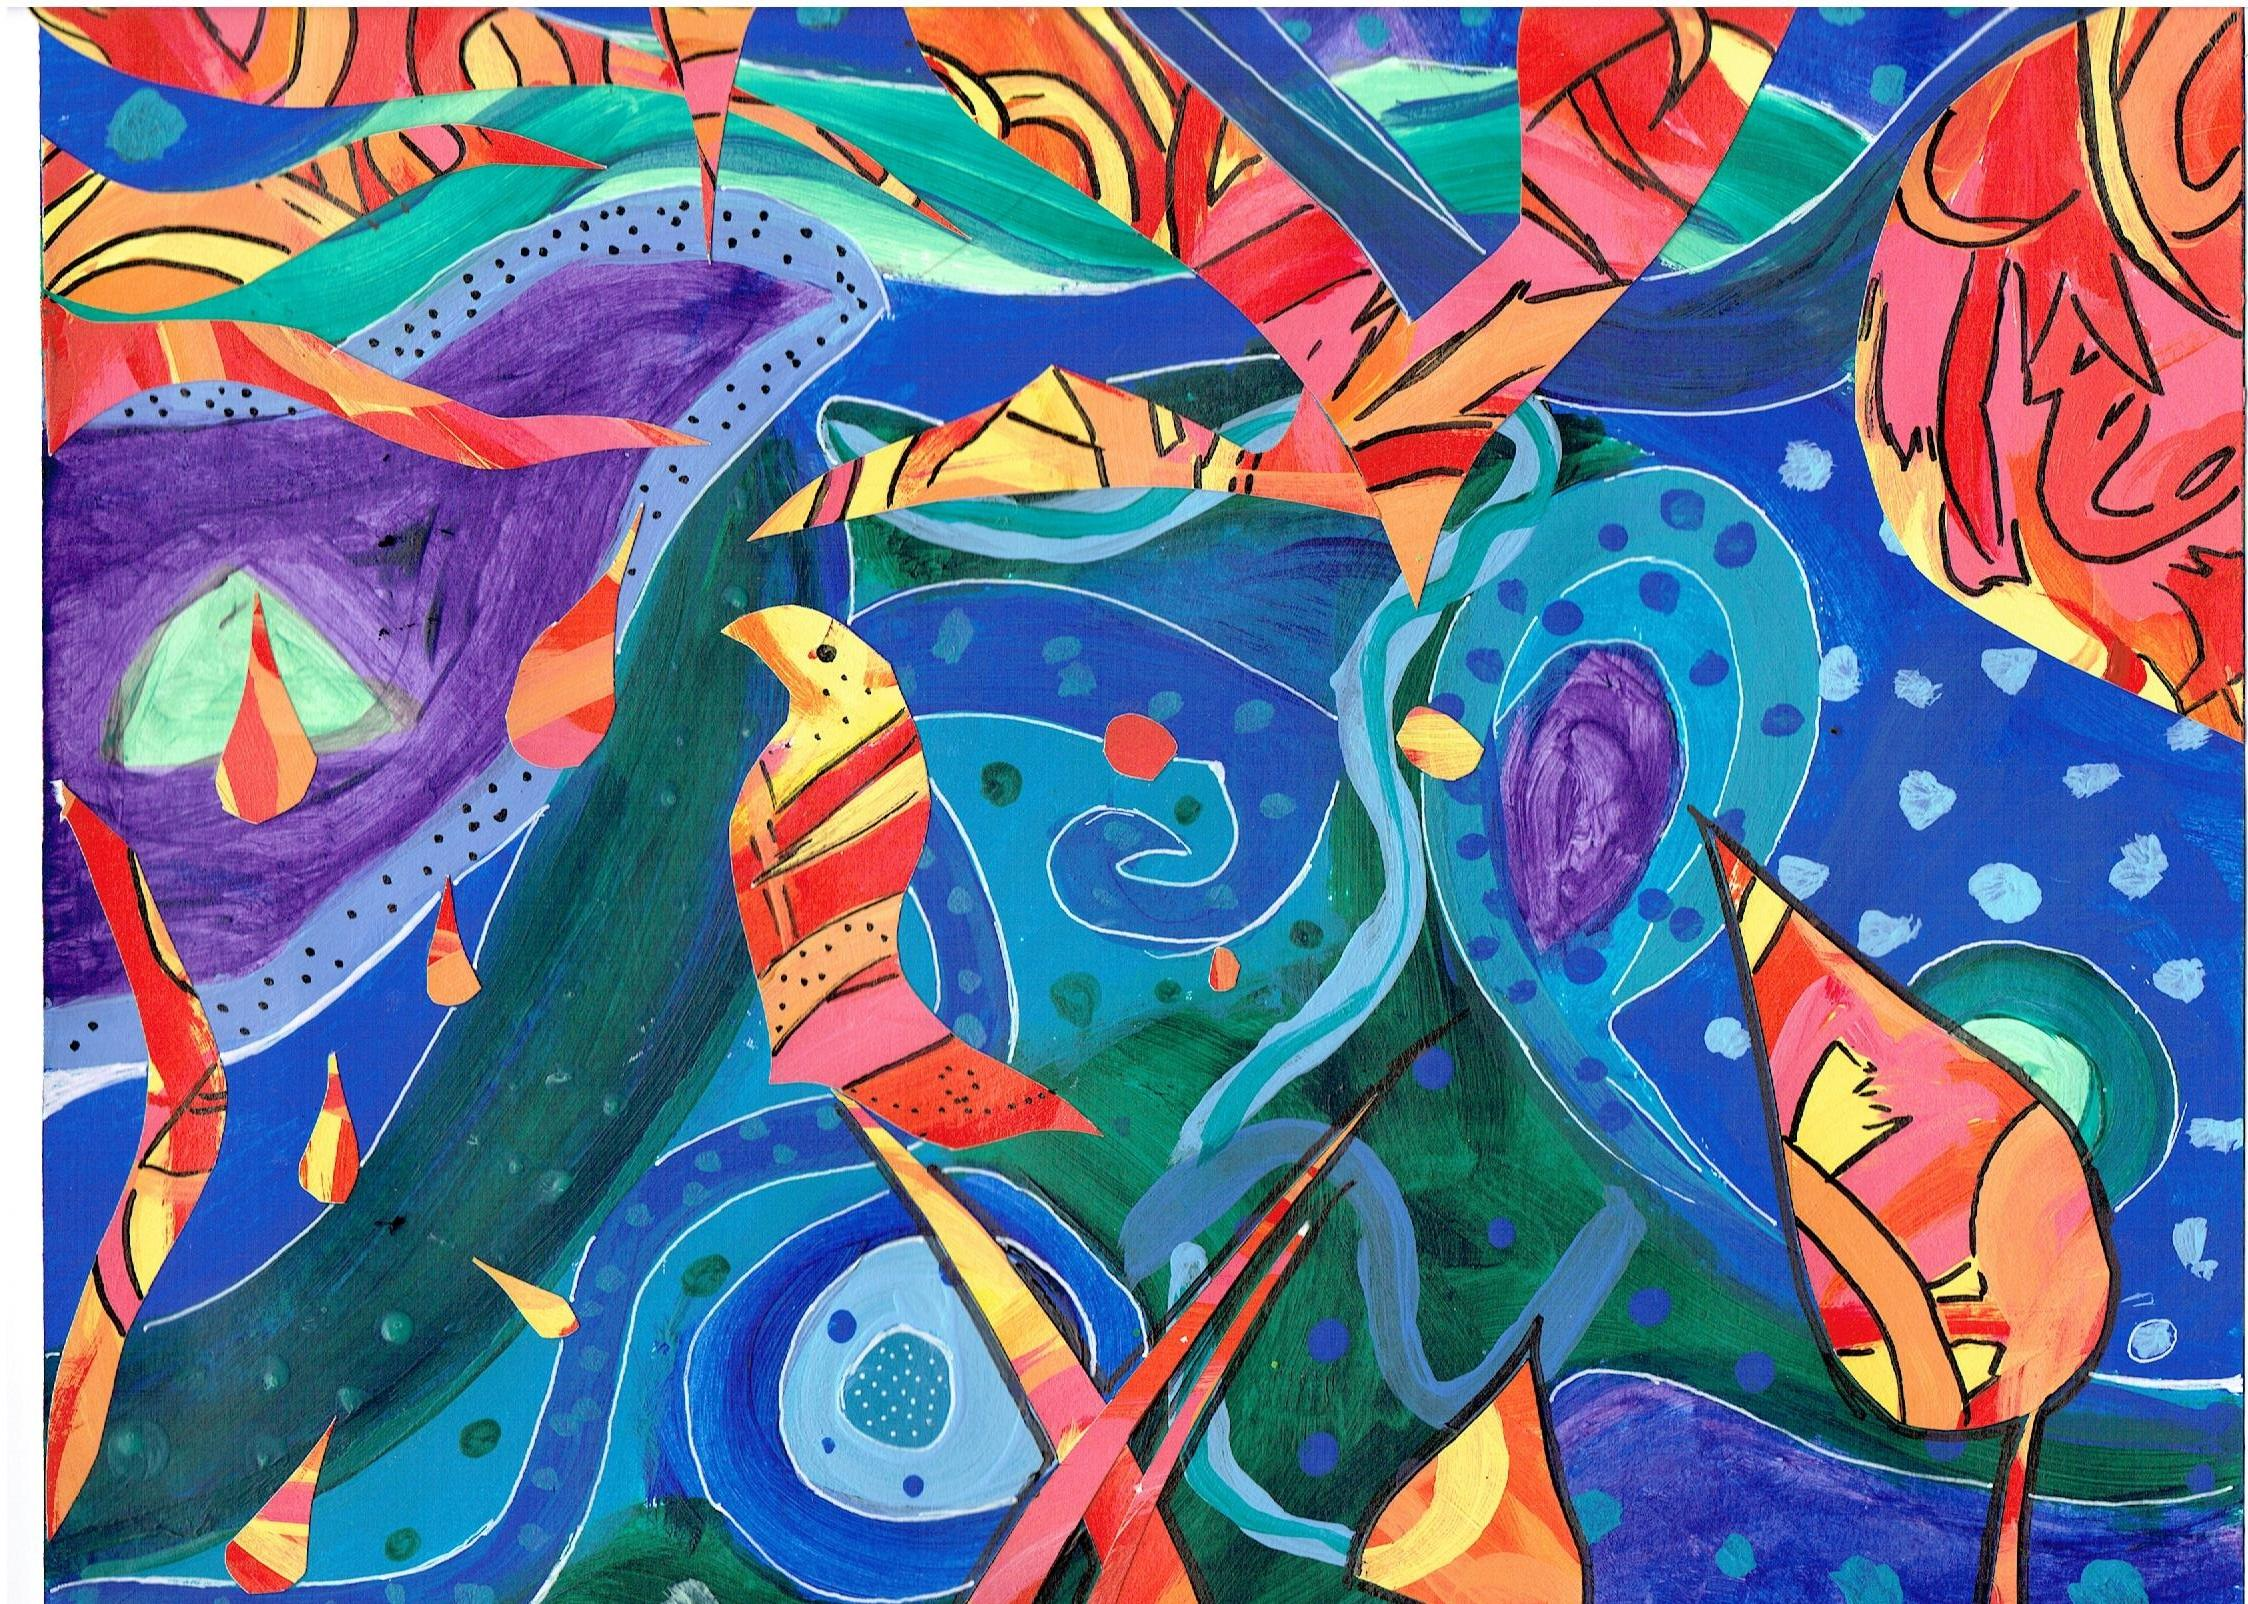 A second colorful collage created by a Hunterdon Prep student in the style of artist, Friedensreich Huntertwasser.